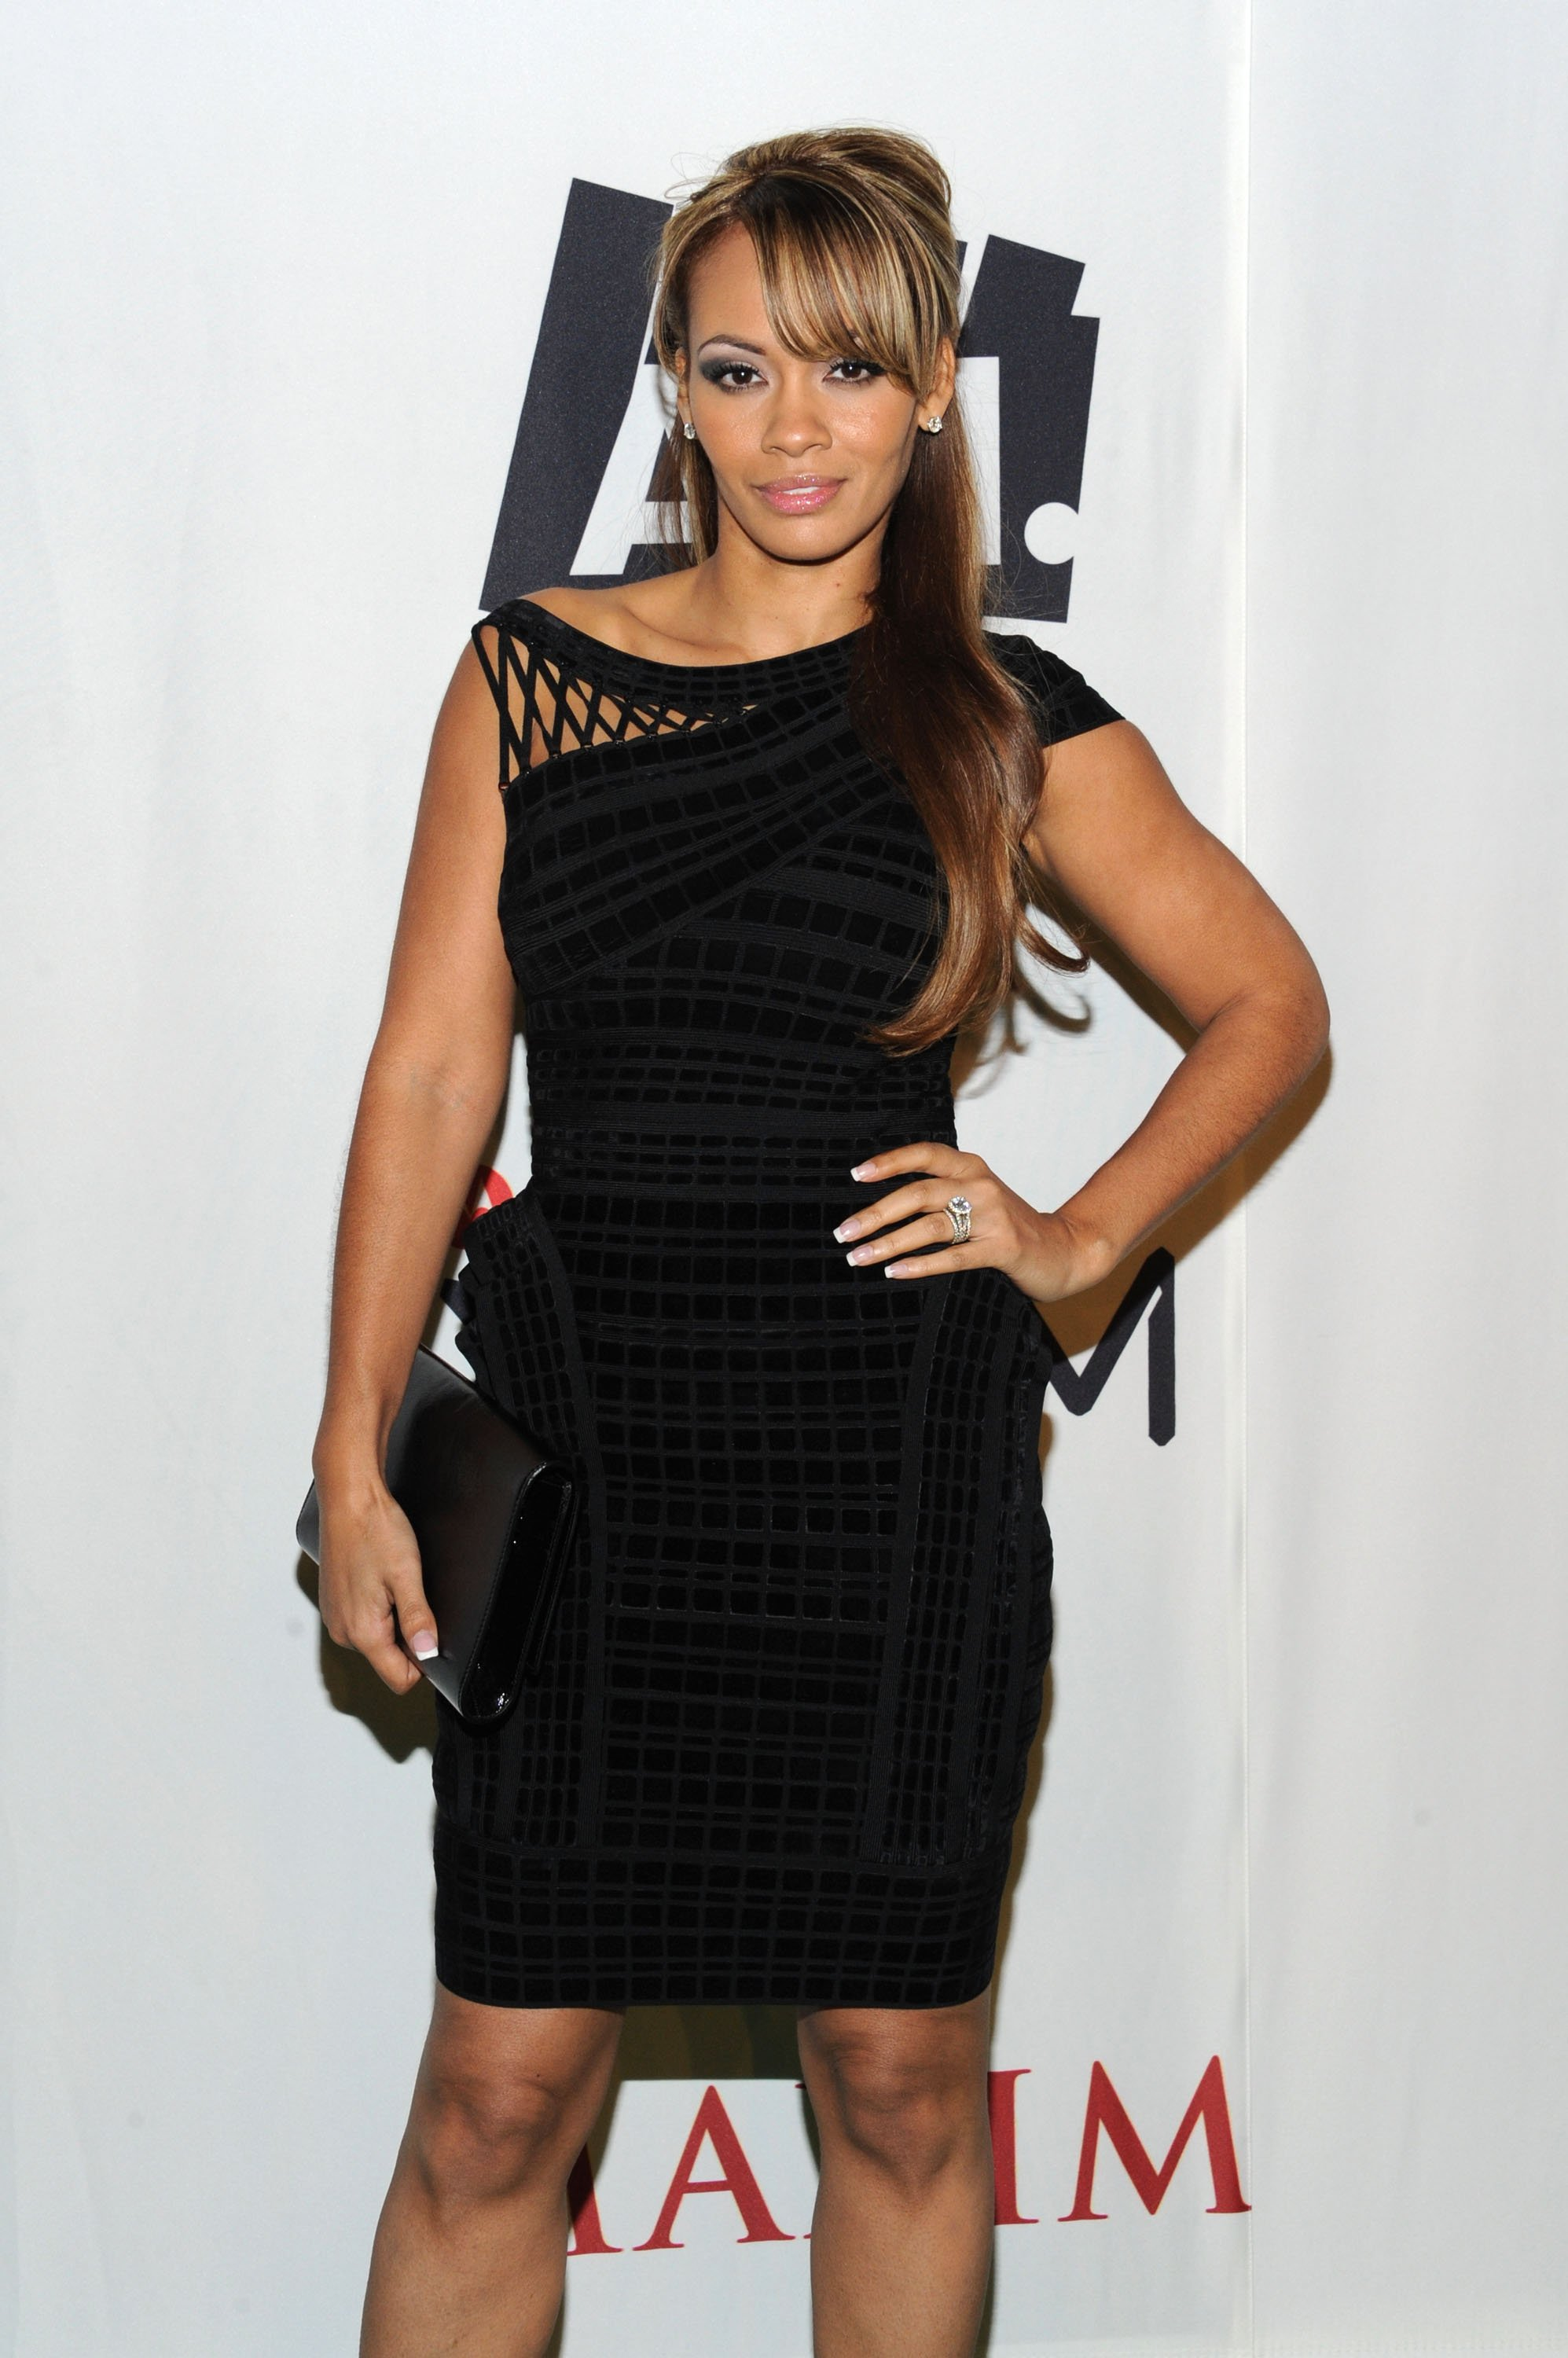 Evelyn Lozada at the Maxim Party on February 5, 2011 in Dallas, Texas | Photo: Getty Images